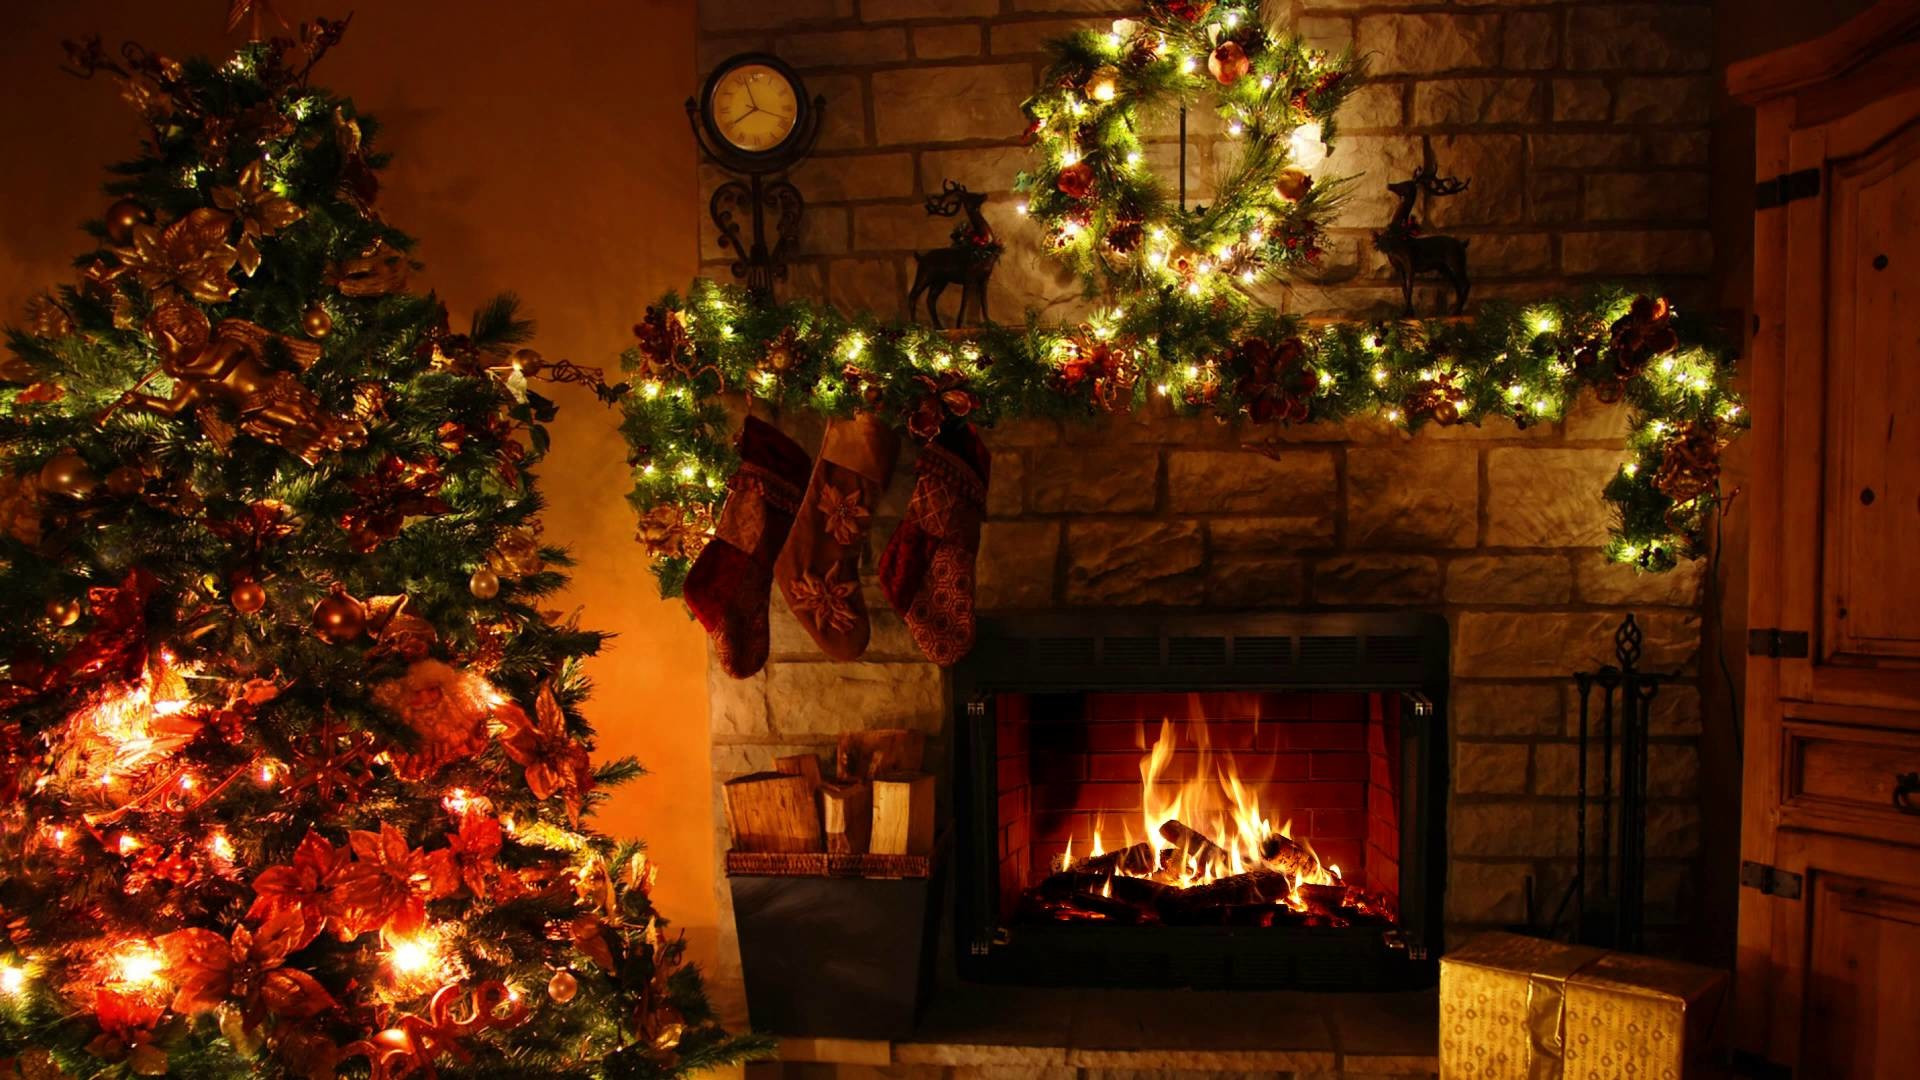 Christmas Tree By Fireplace  Christmas Fireplace Background ·① WallpaperTag